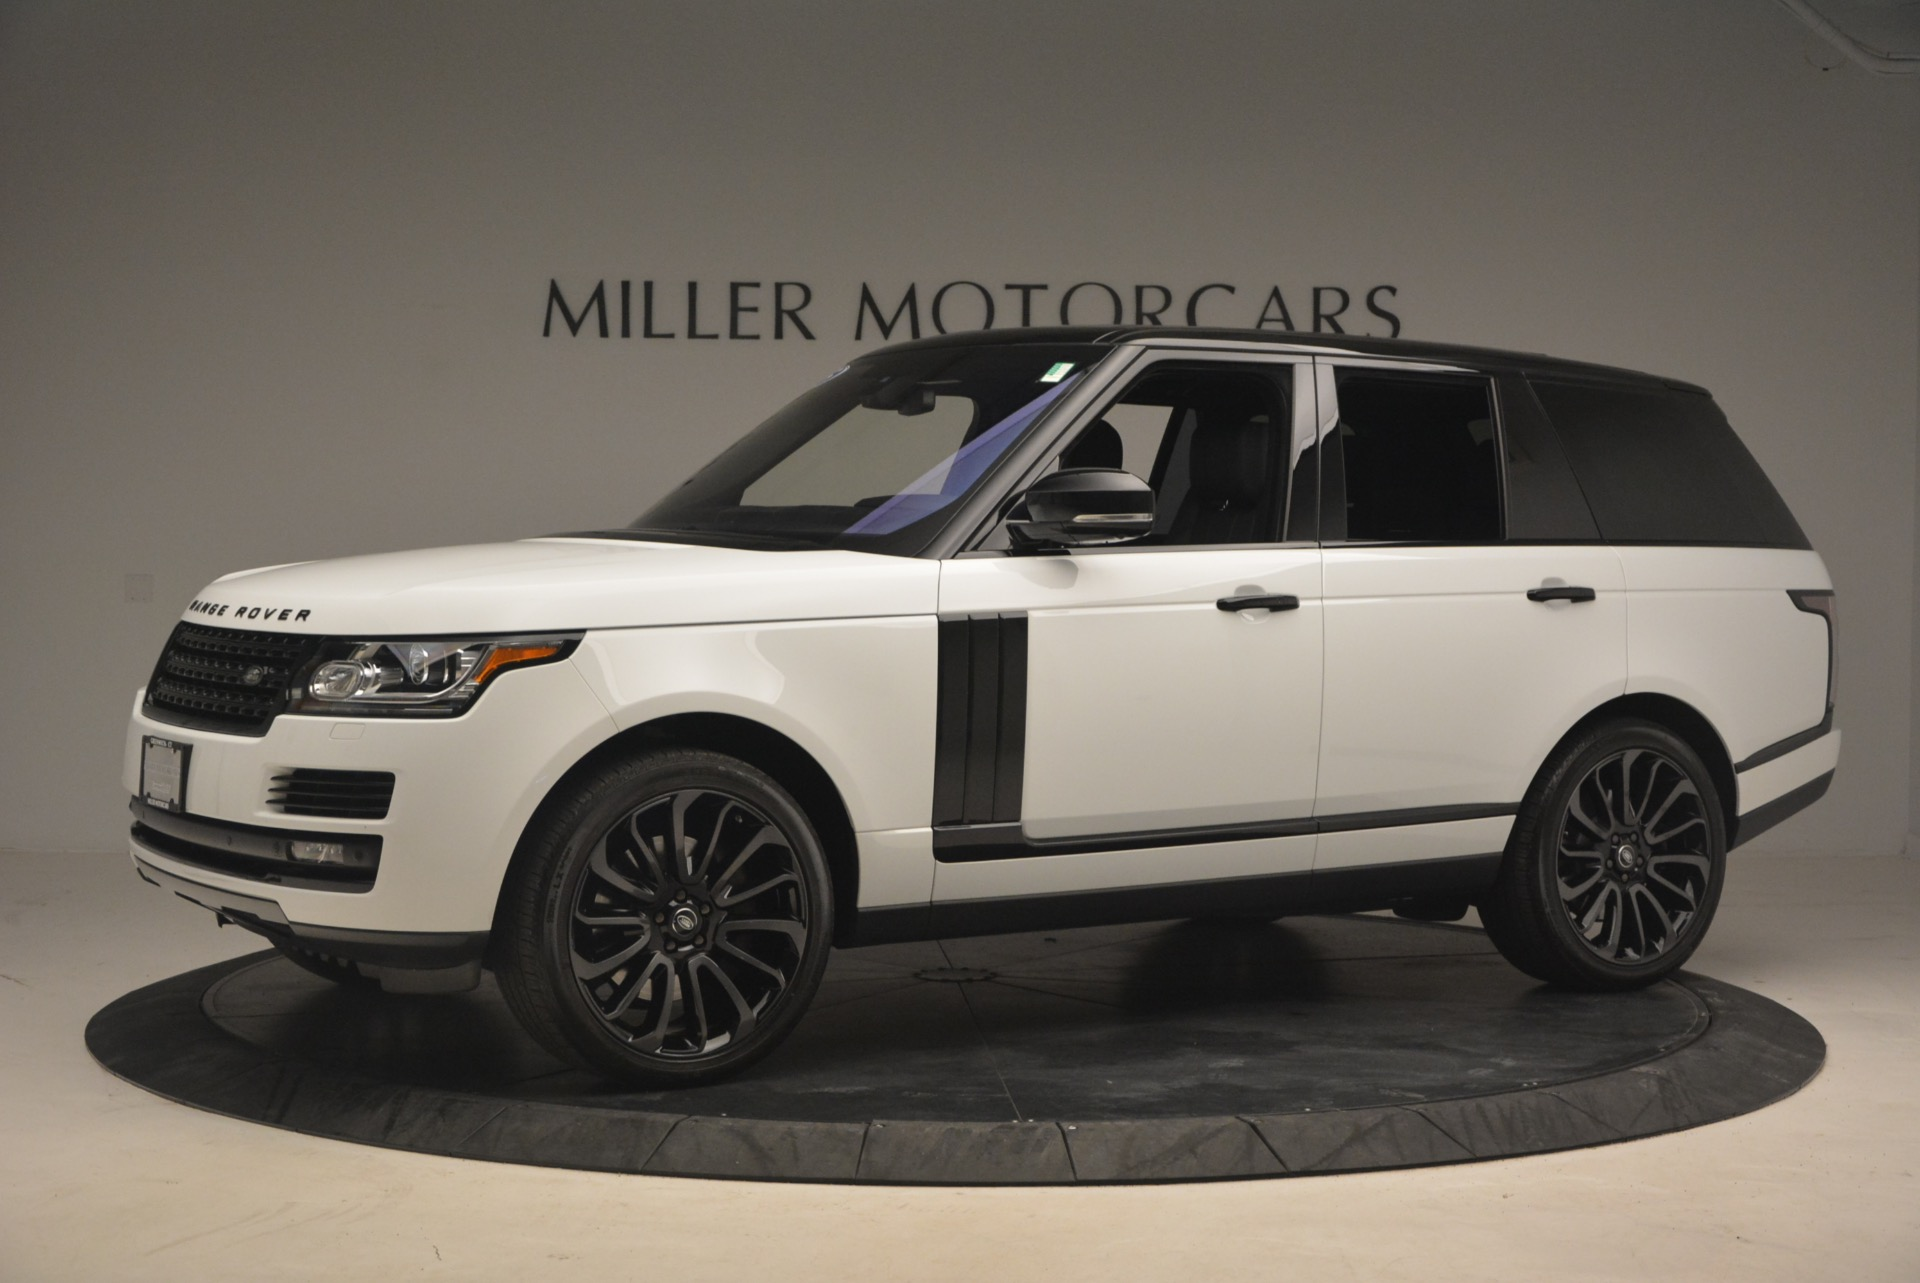 Used 2015 Land Rover Range Rover Supercharged For Sale In Westport, CT 1292_p2